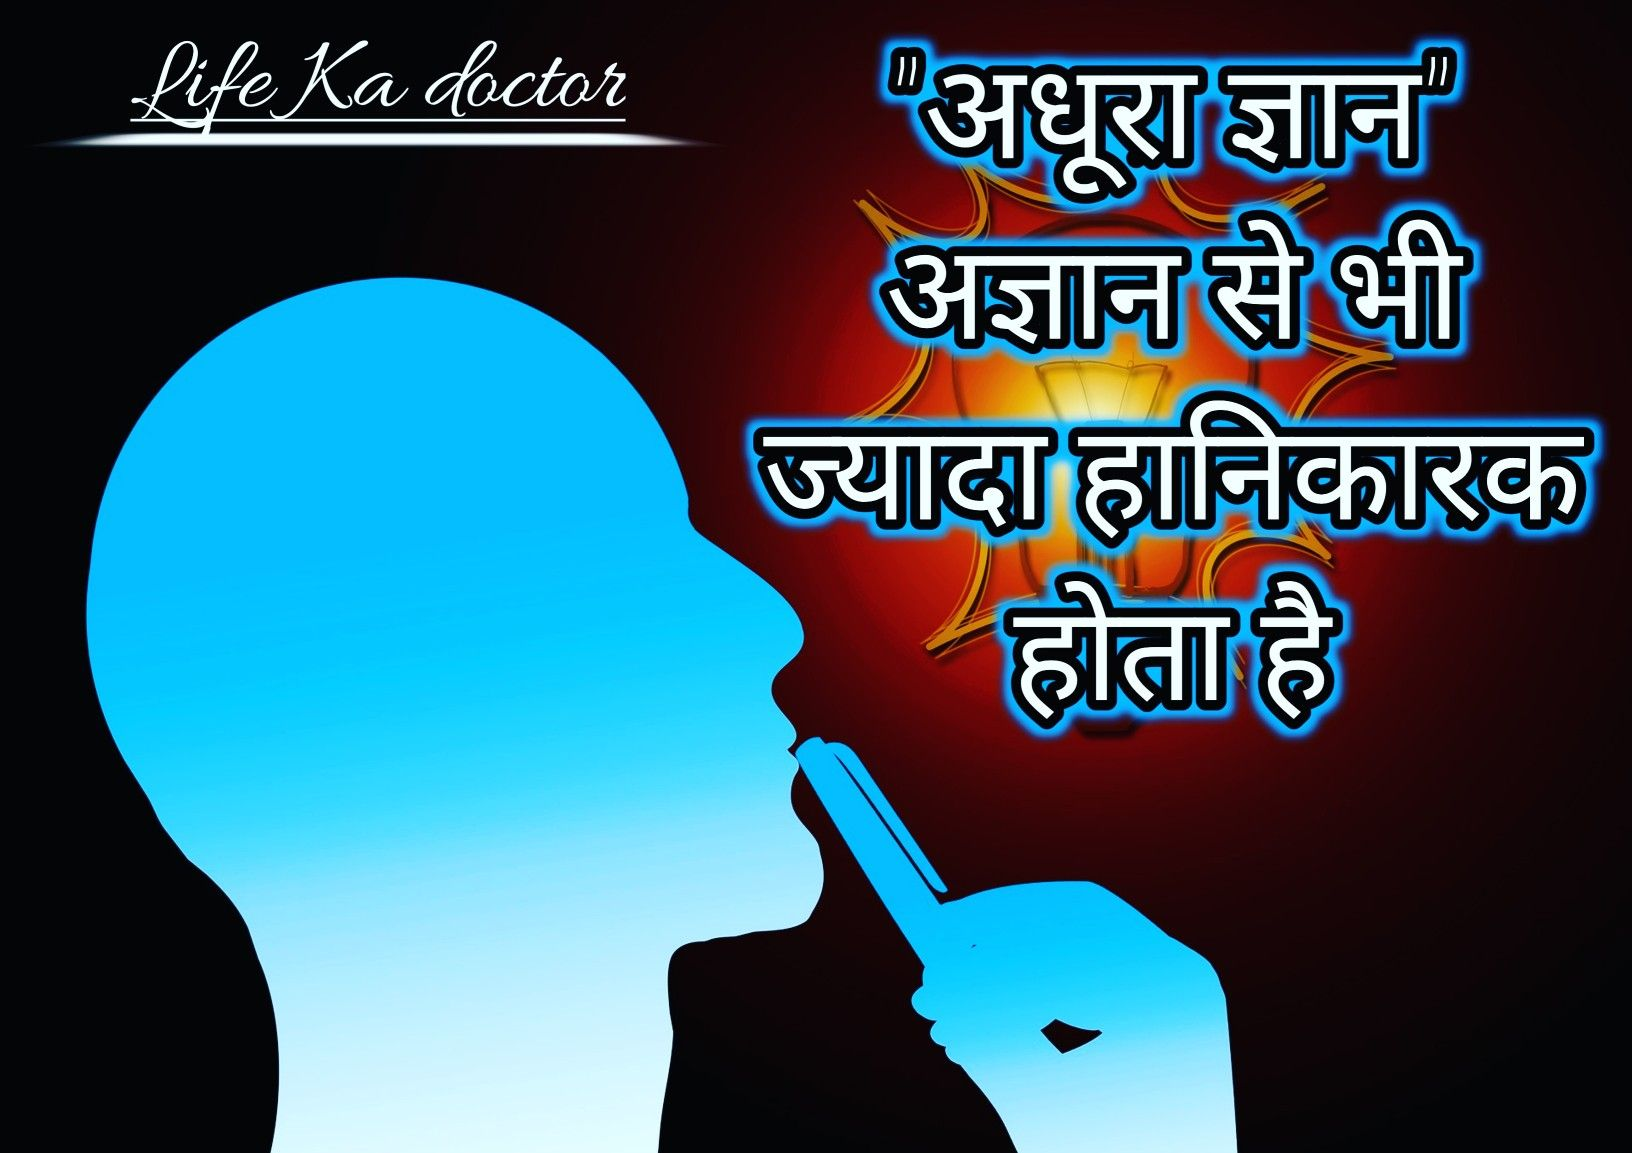 Motivational Thoughts In Hindi Motivational Thoughts Motivational Thoughts In Hindi Motivational Quotes For Life